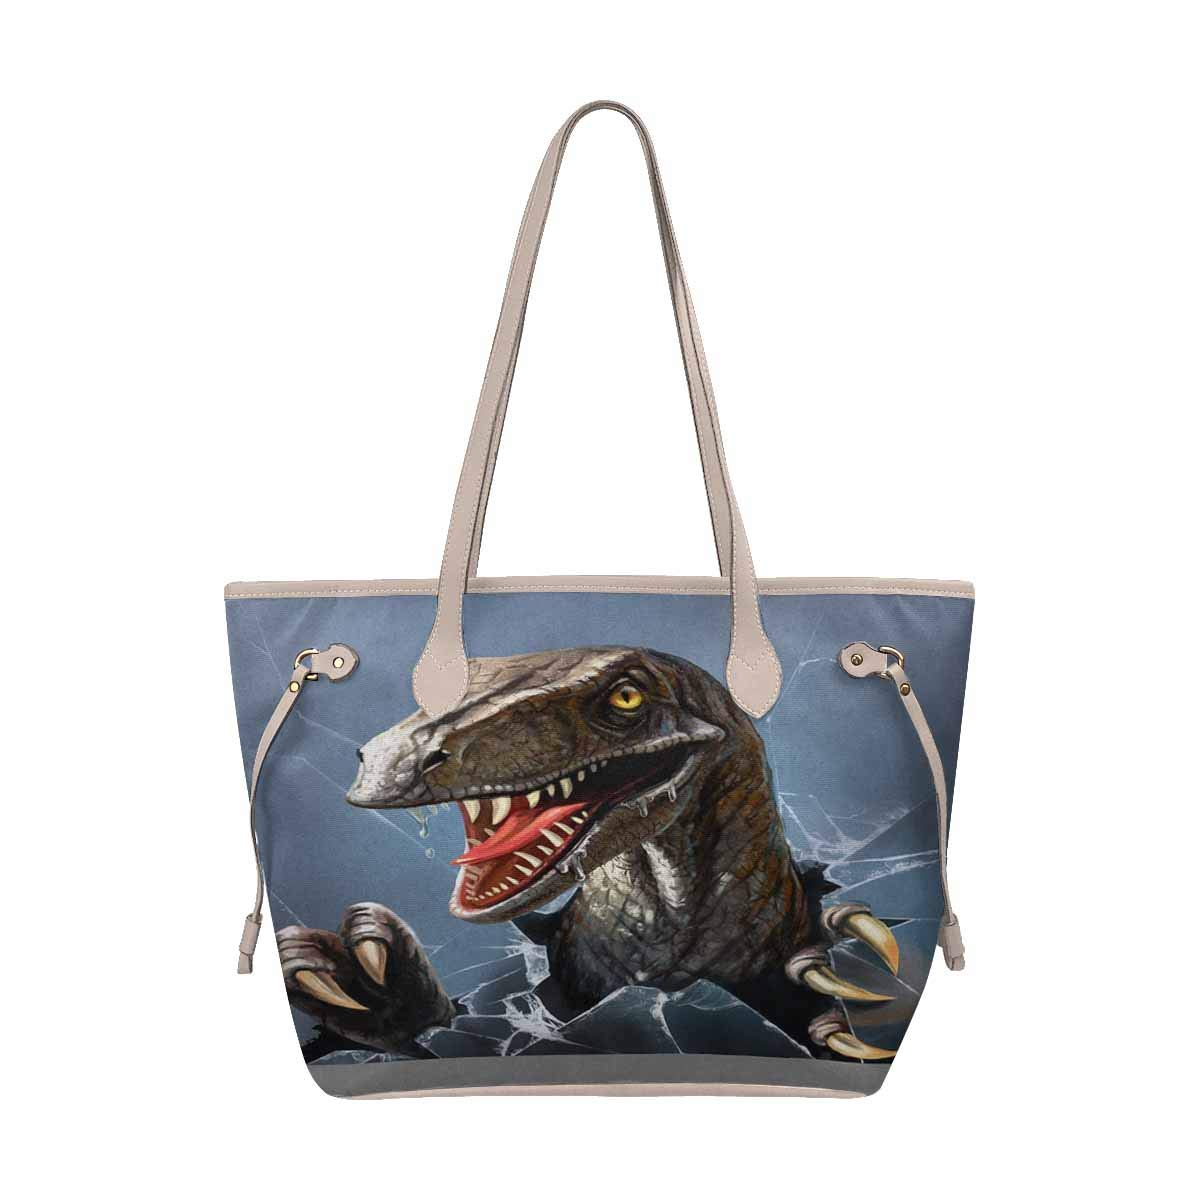 InterestPrint Teal Paint Strokes Leather Tote Bag Large